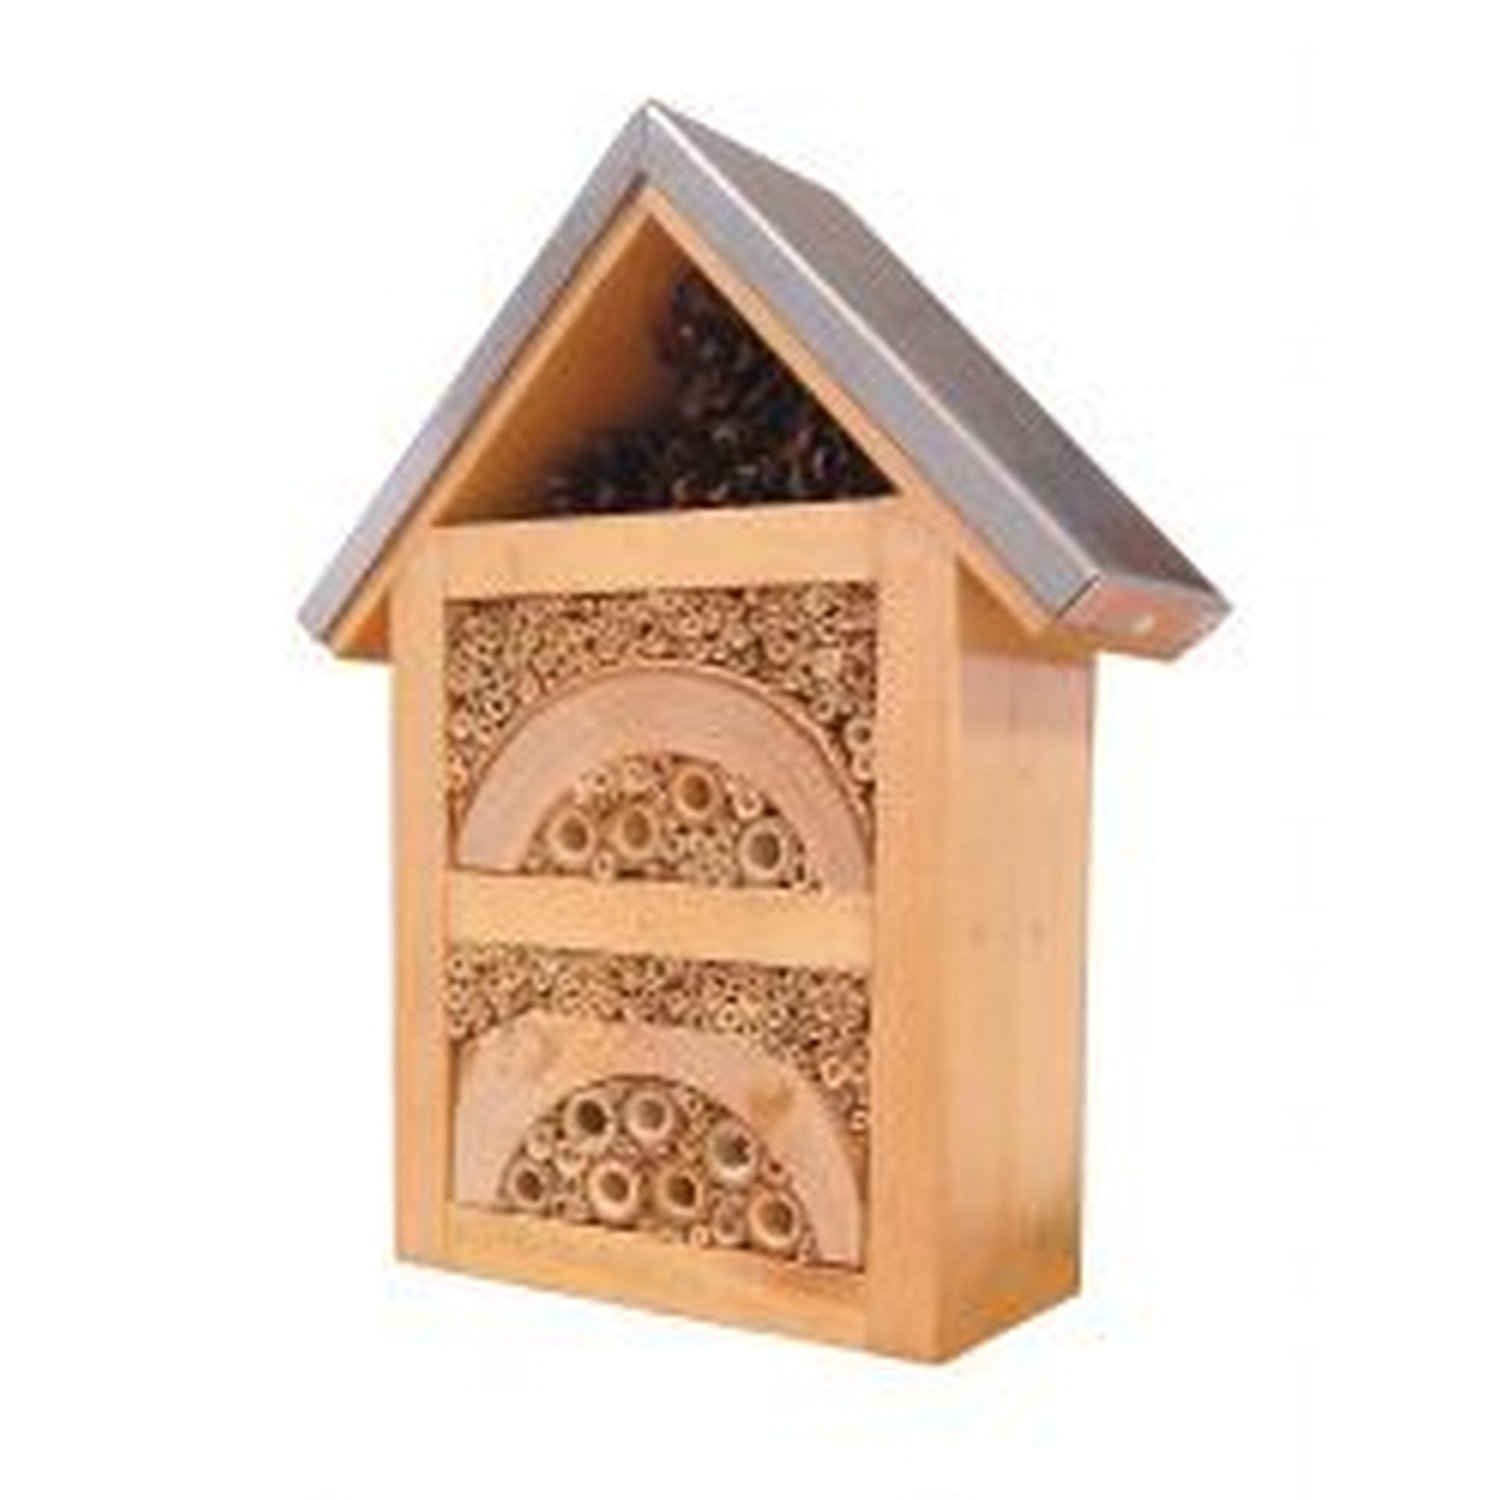 Natures Haven Garden Insect Box (One Size) (May Vary) CRANSWICK